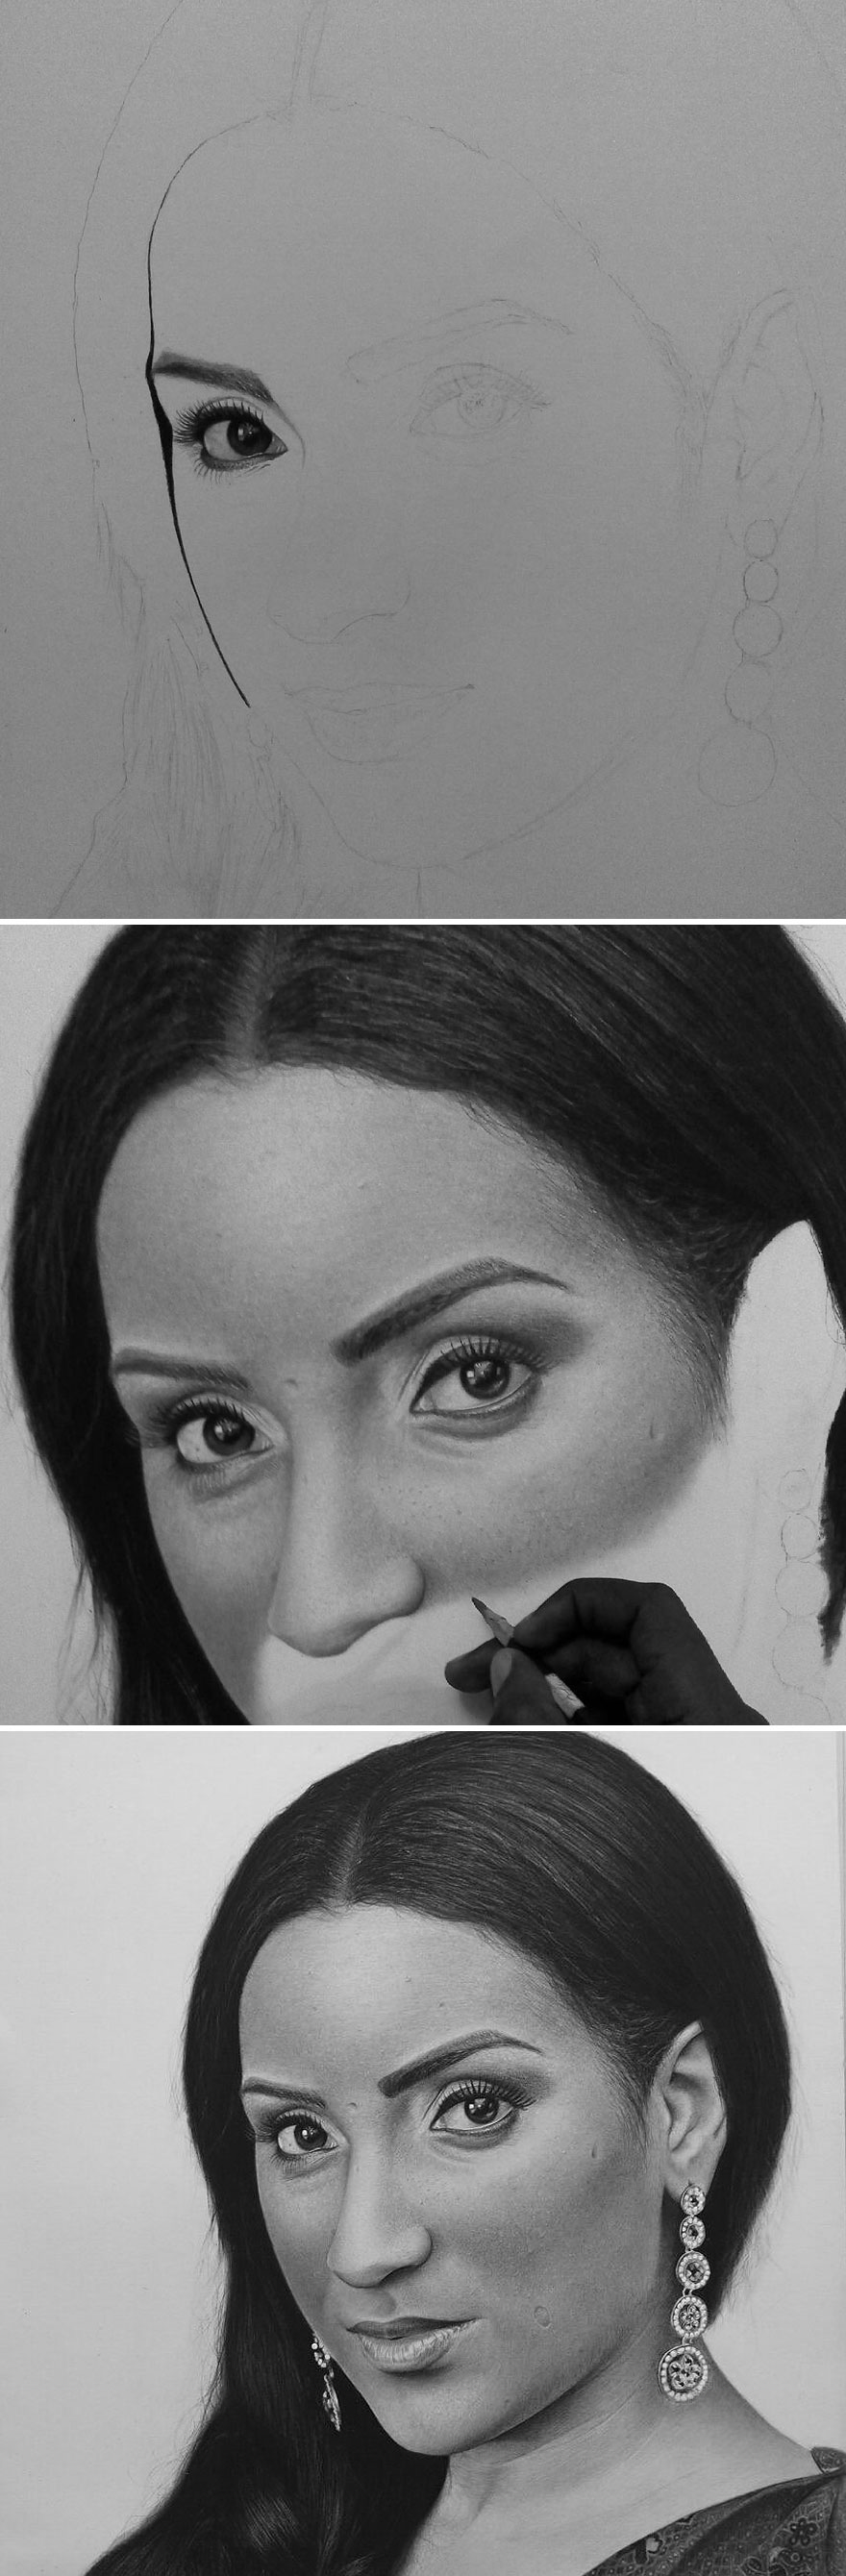 hyperrealism-pencil-portraits-arinze-stanley-1-58d28bfdef2bb__880-2